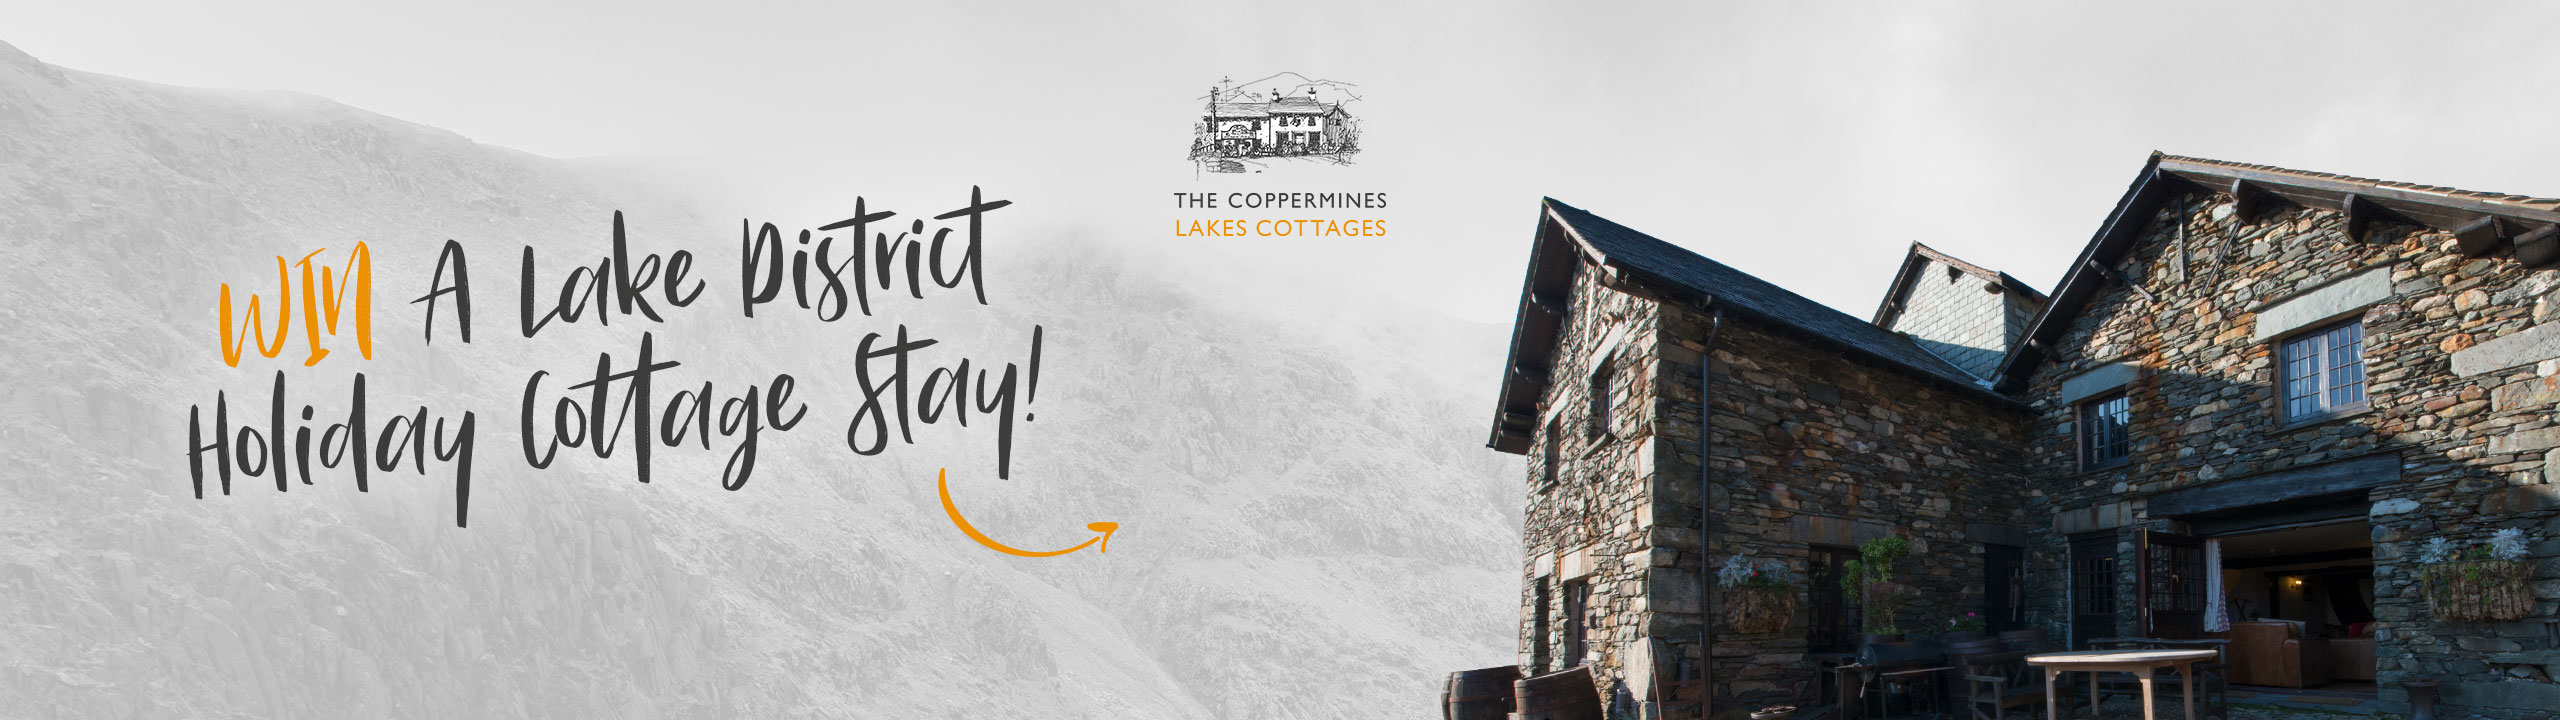 Win a Lake District Holiday Cottage Stay